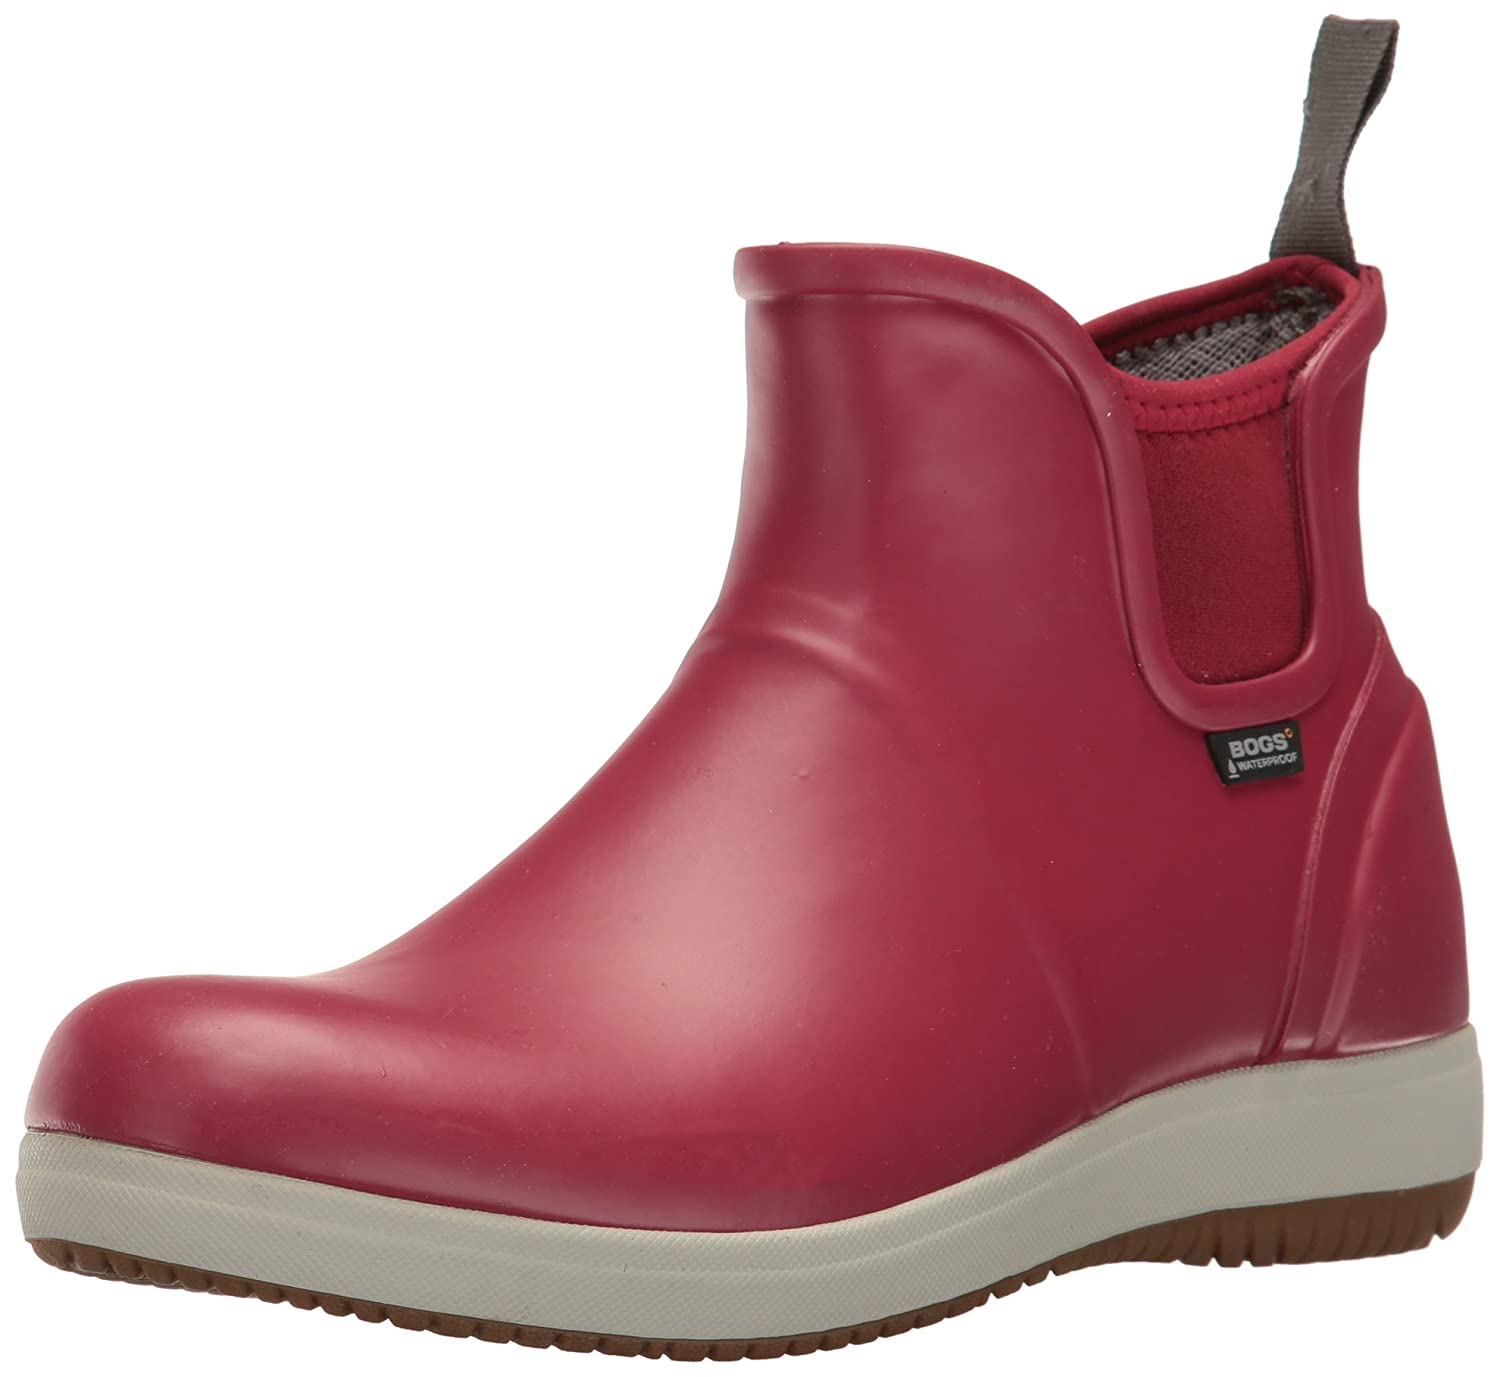 Bogs Women's Quinn Slip on Rain Boot B01J6OZHEO 7 B(M) US|Brick